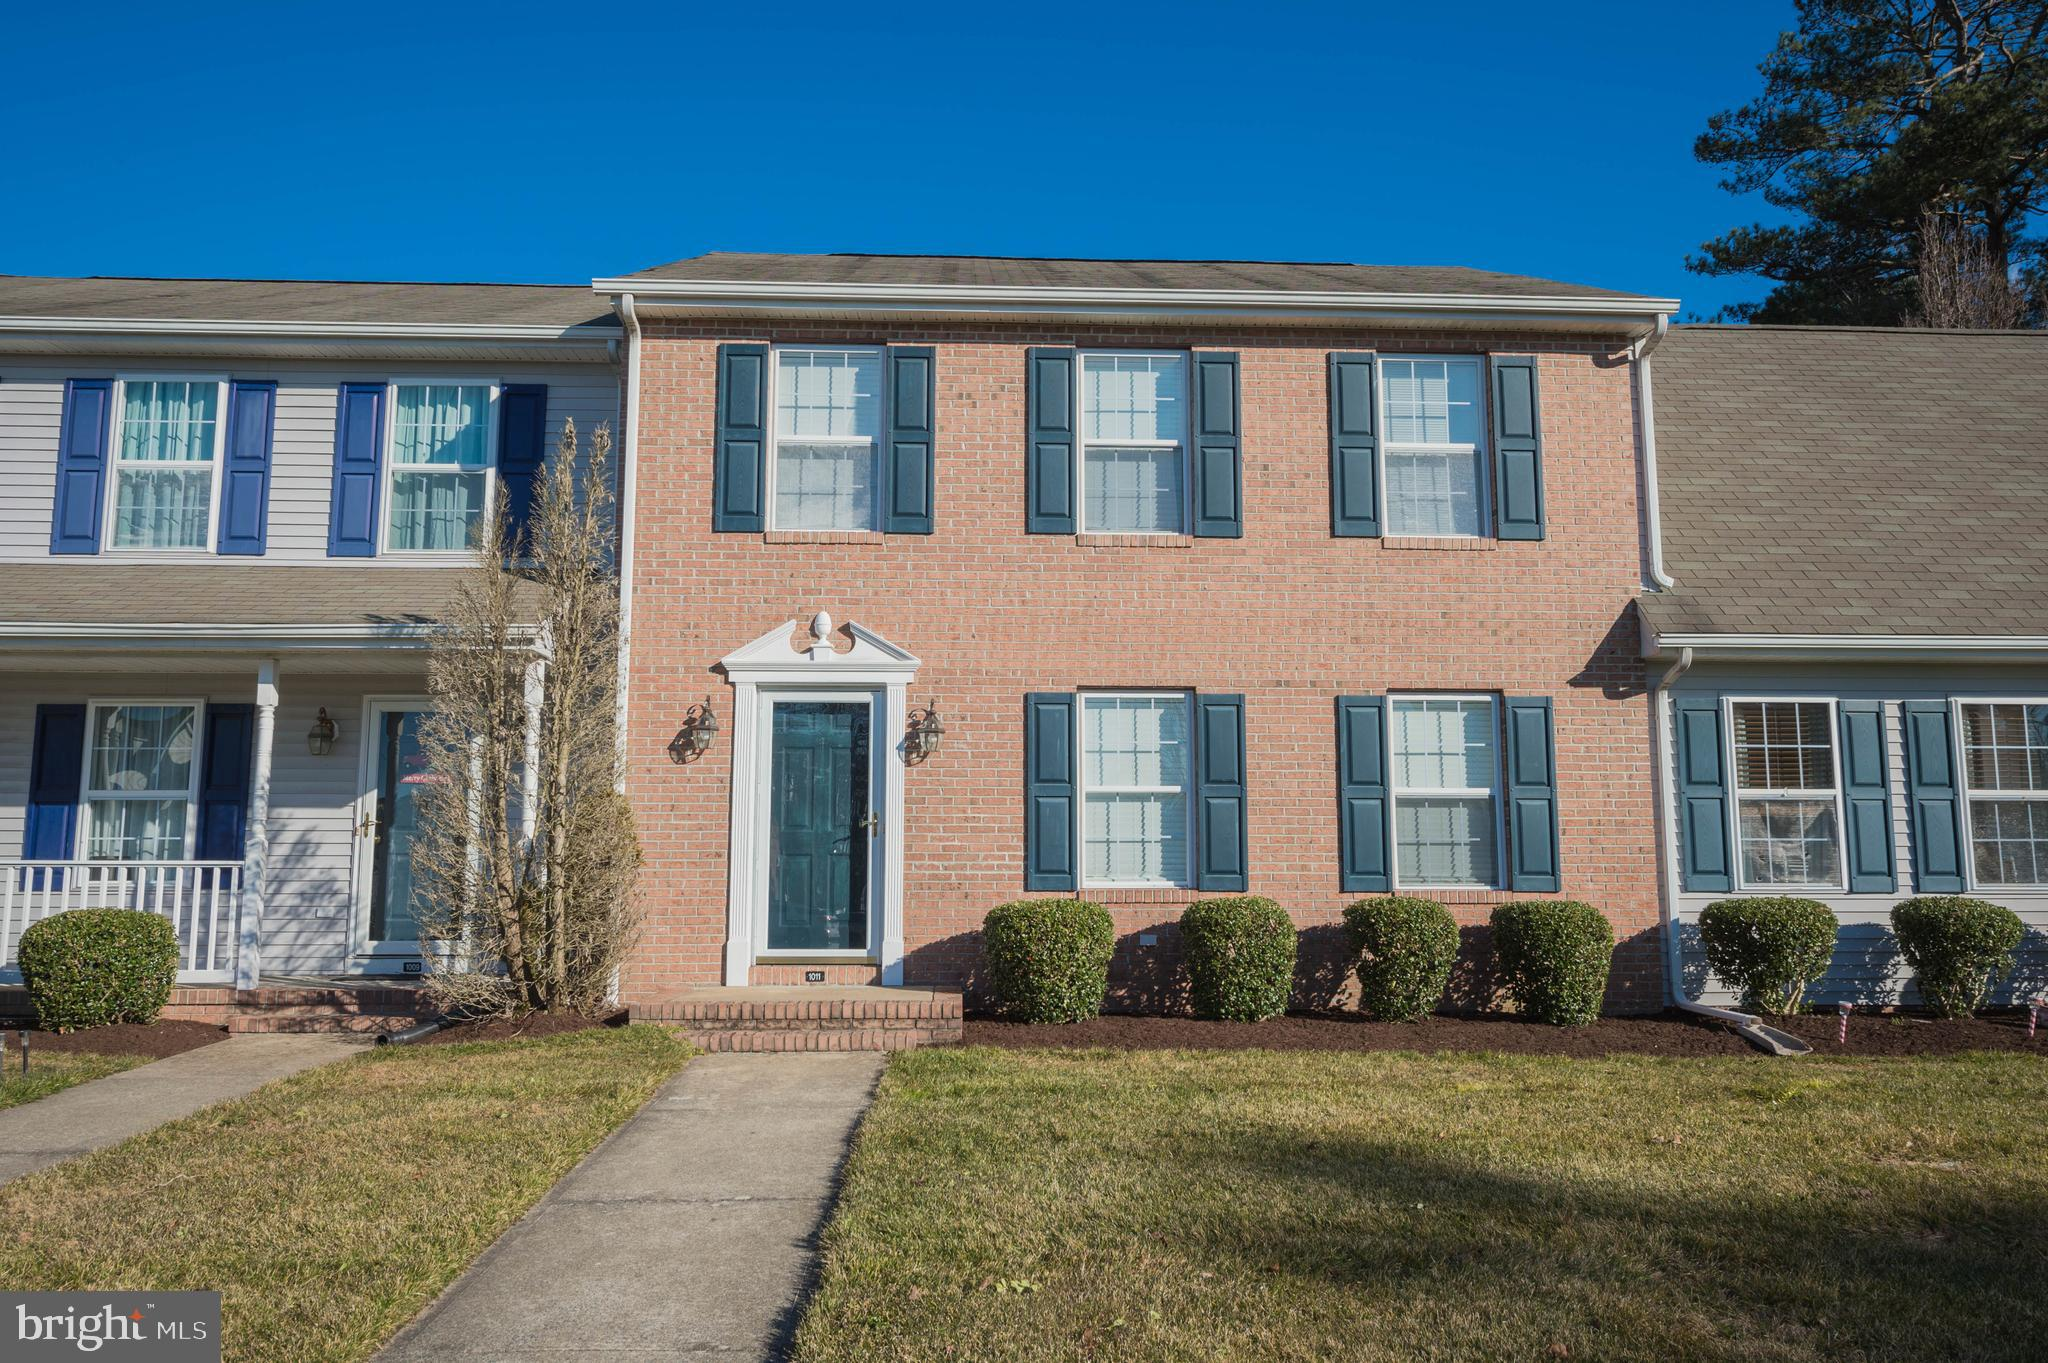 Adorable & Affordable! 3BR/2.5BA brick-front townhome in the beloved Stone Gate community - tucked a